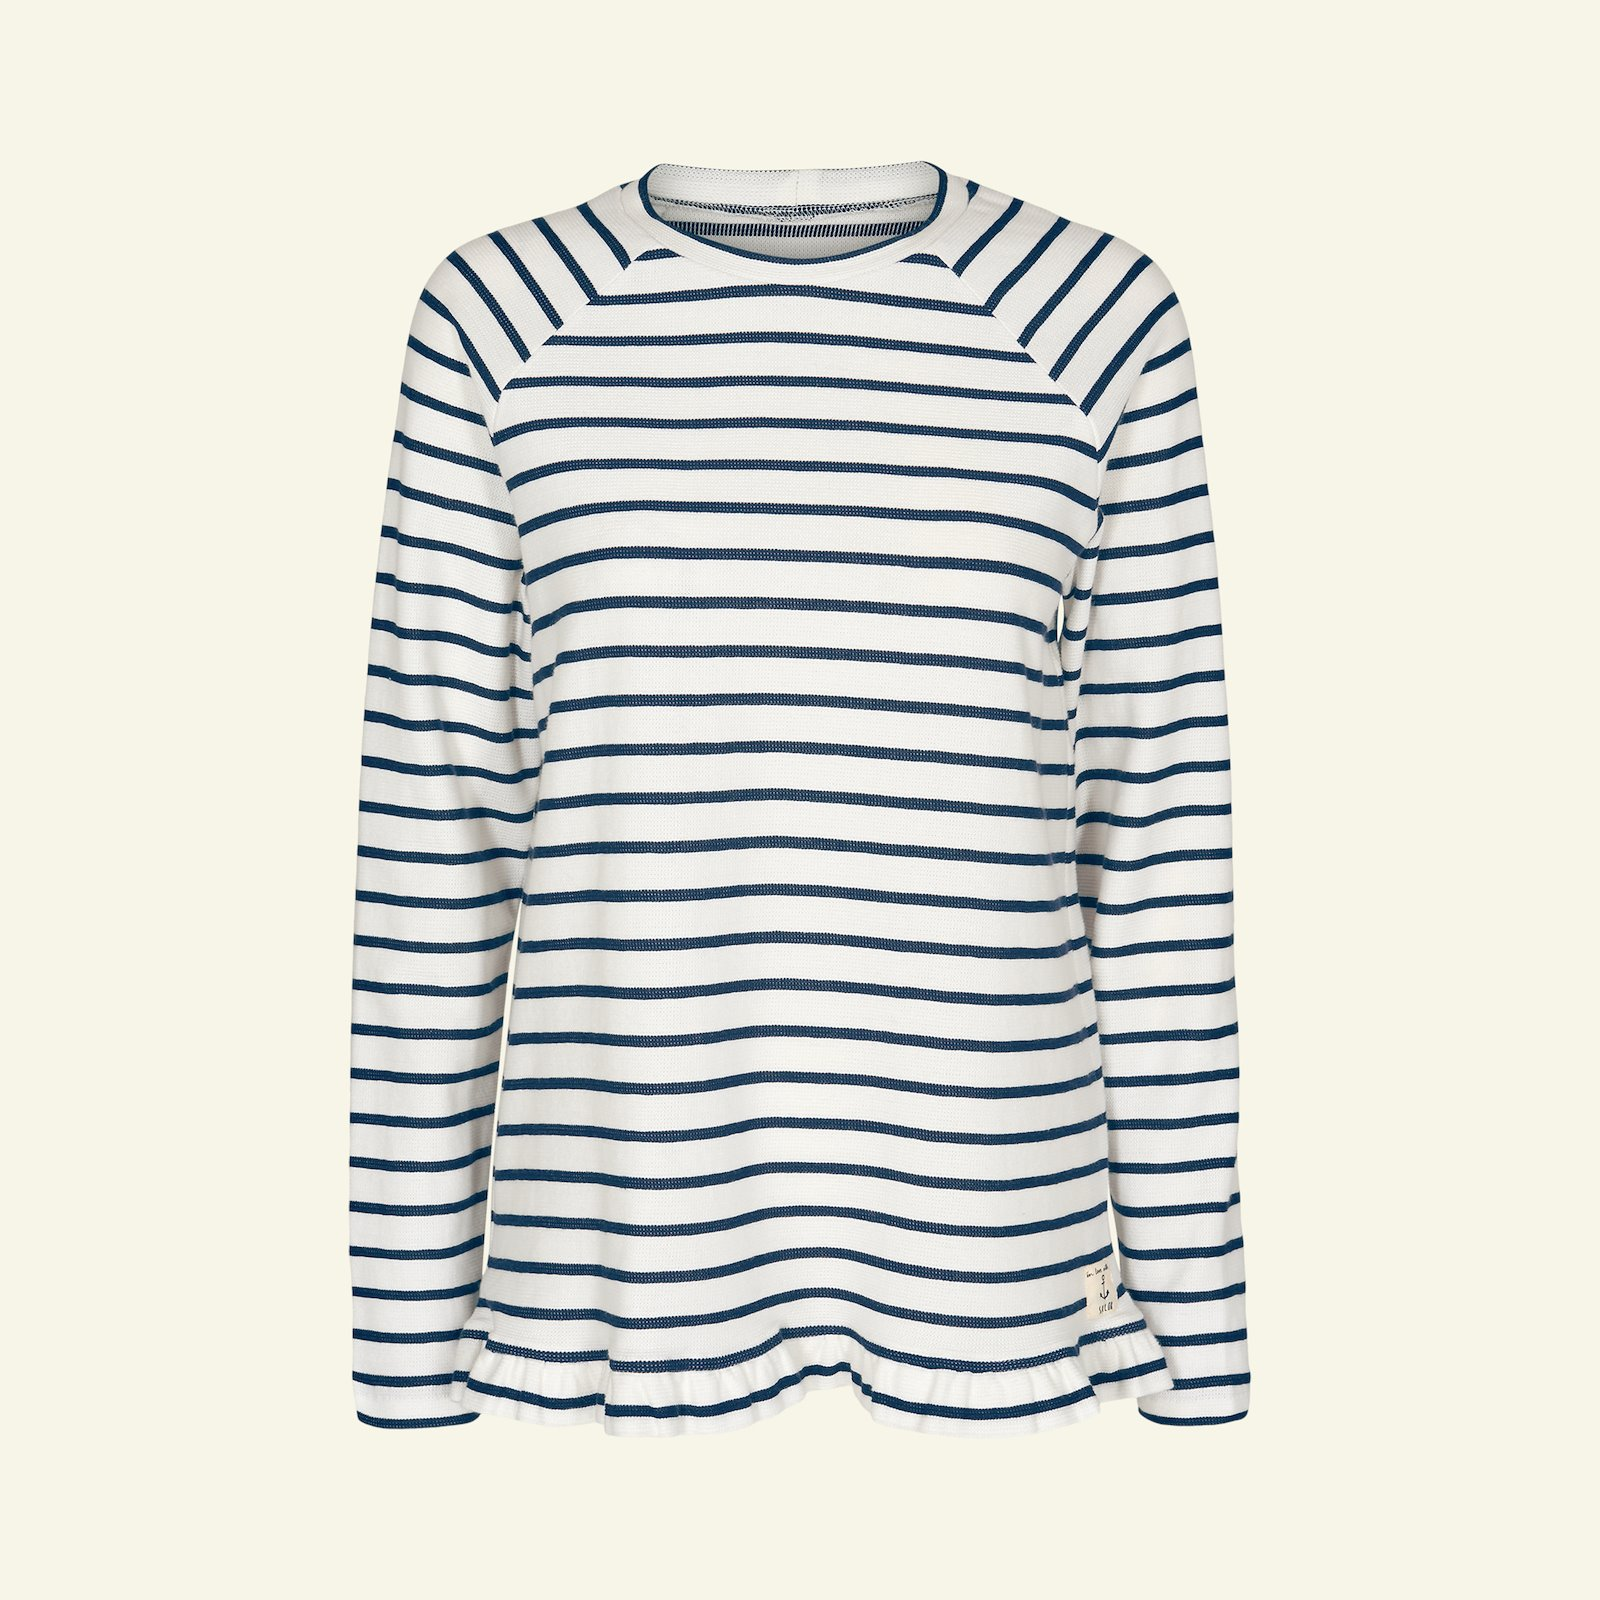 French terry offwhite with yd stripe p22072_203582_26547_sskit